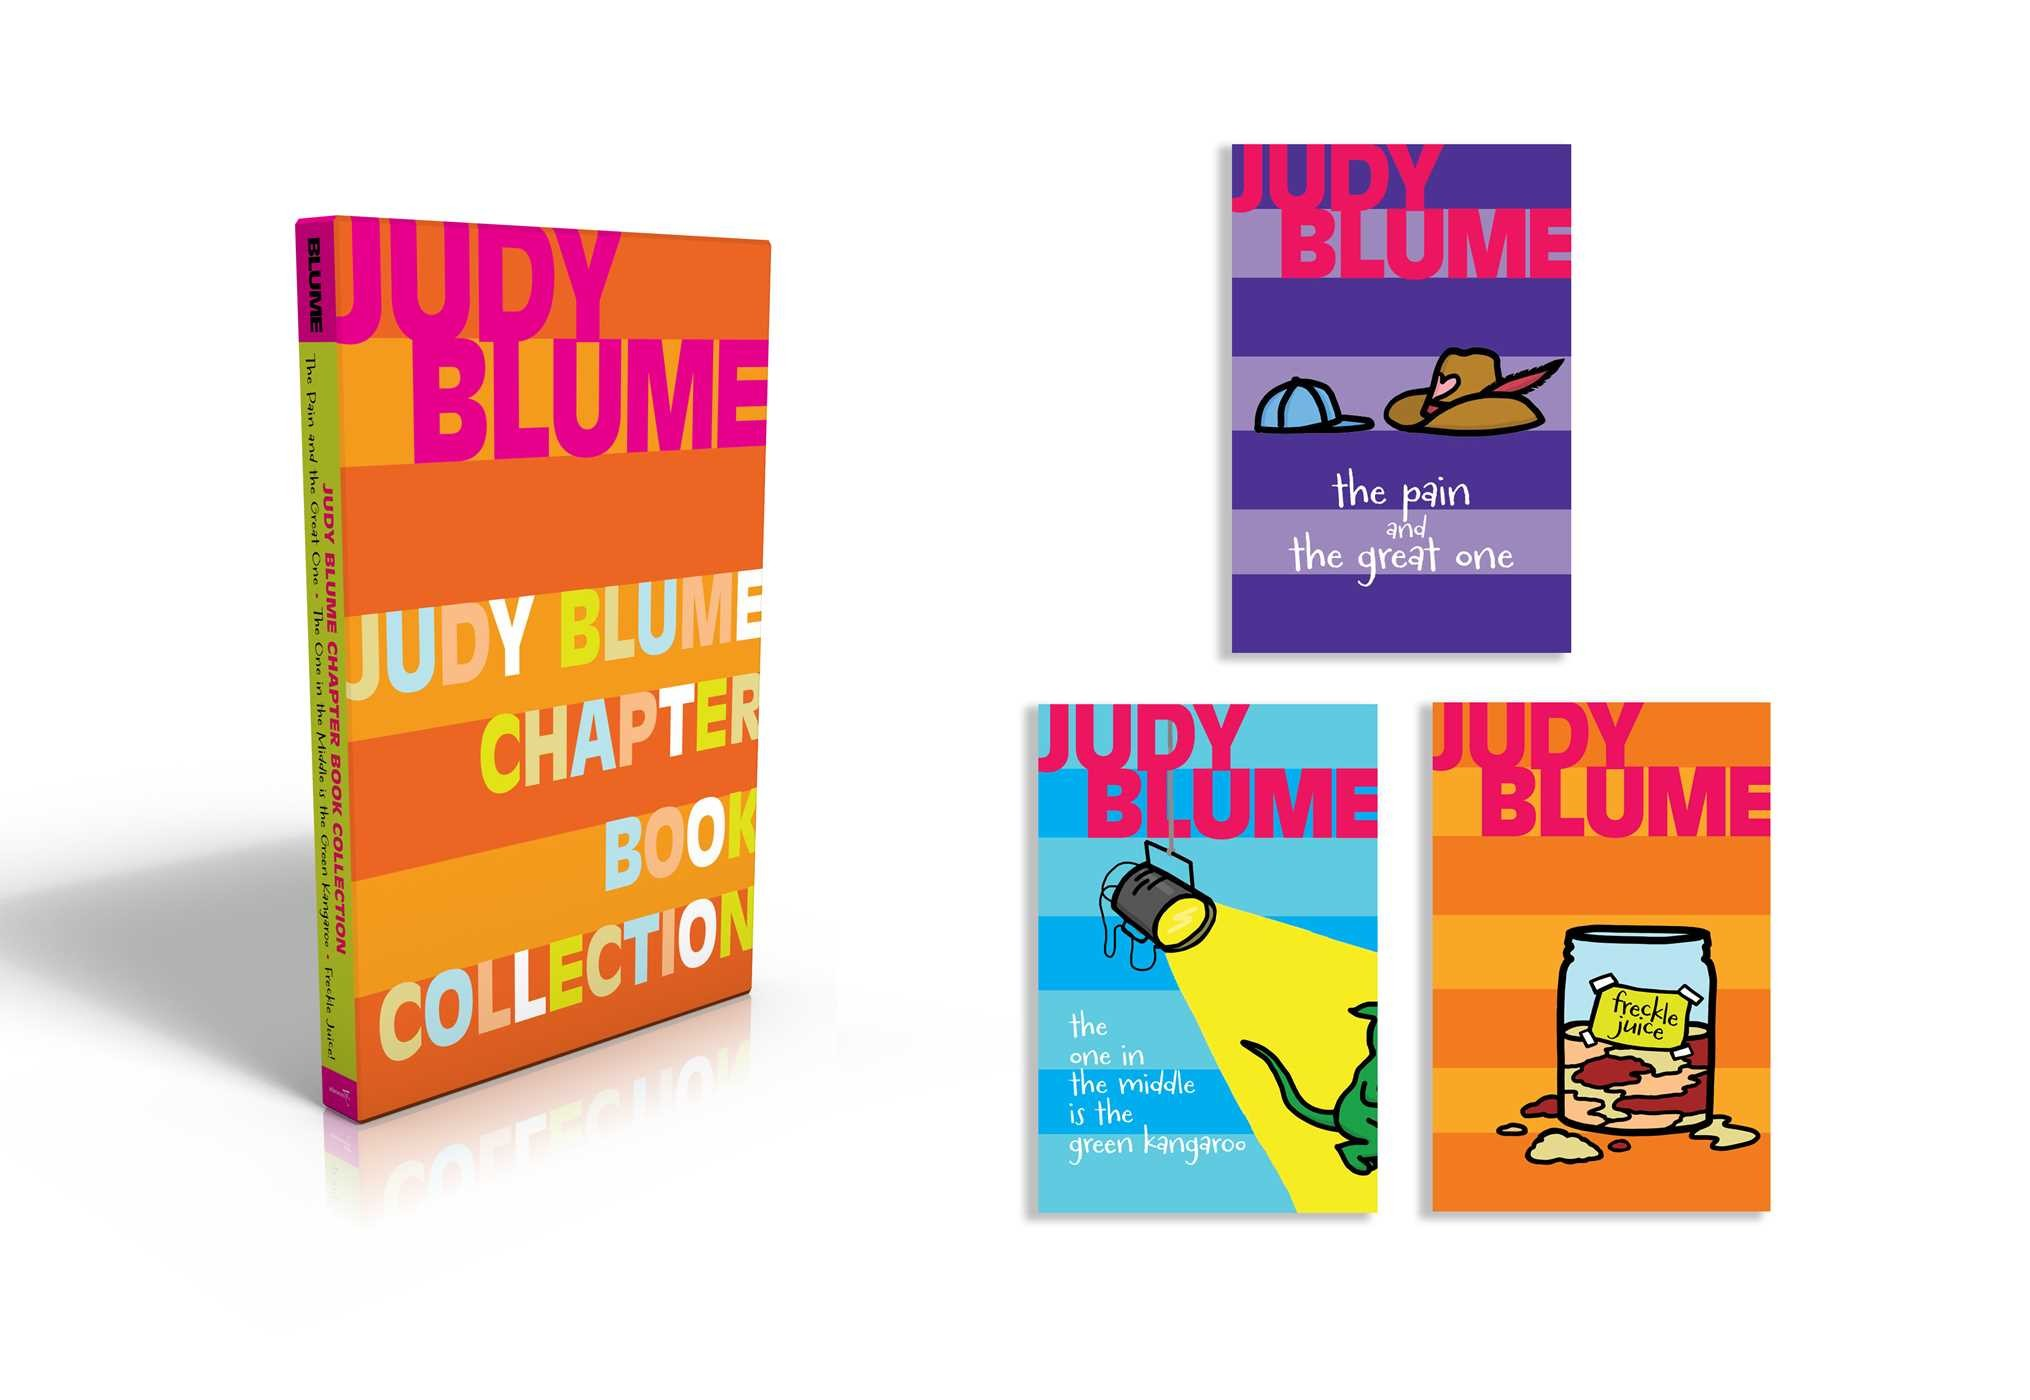 Judy blume chapter book collection 9781481485708.in01